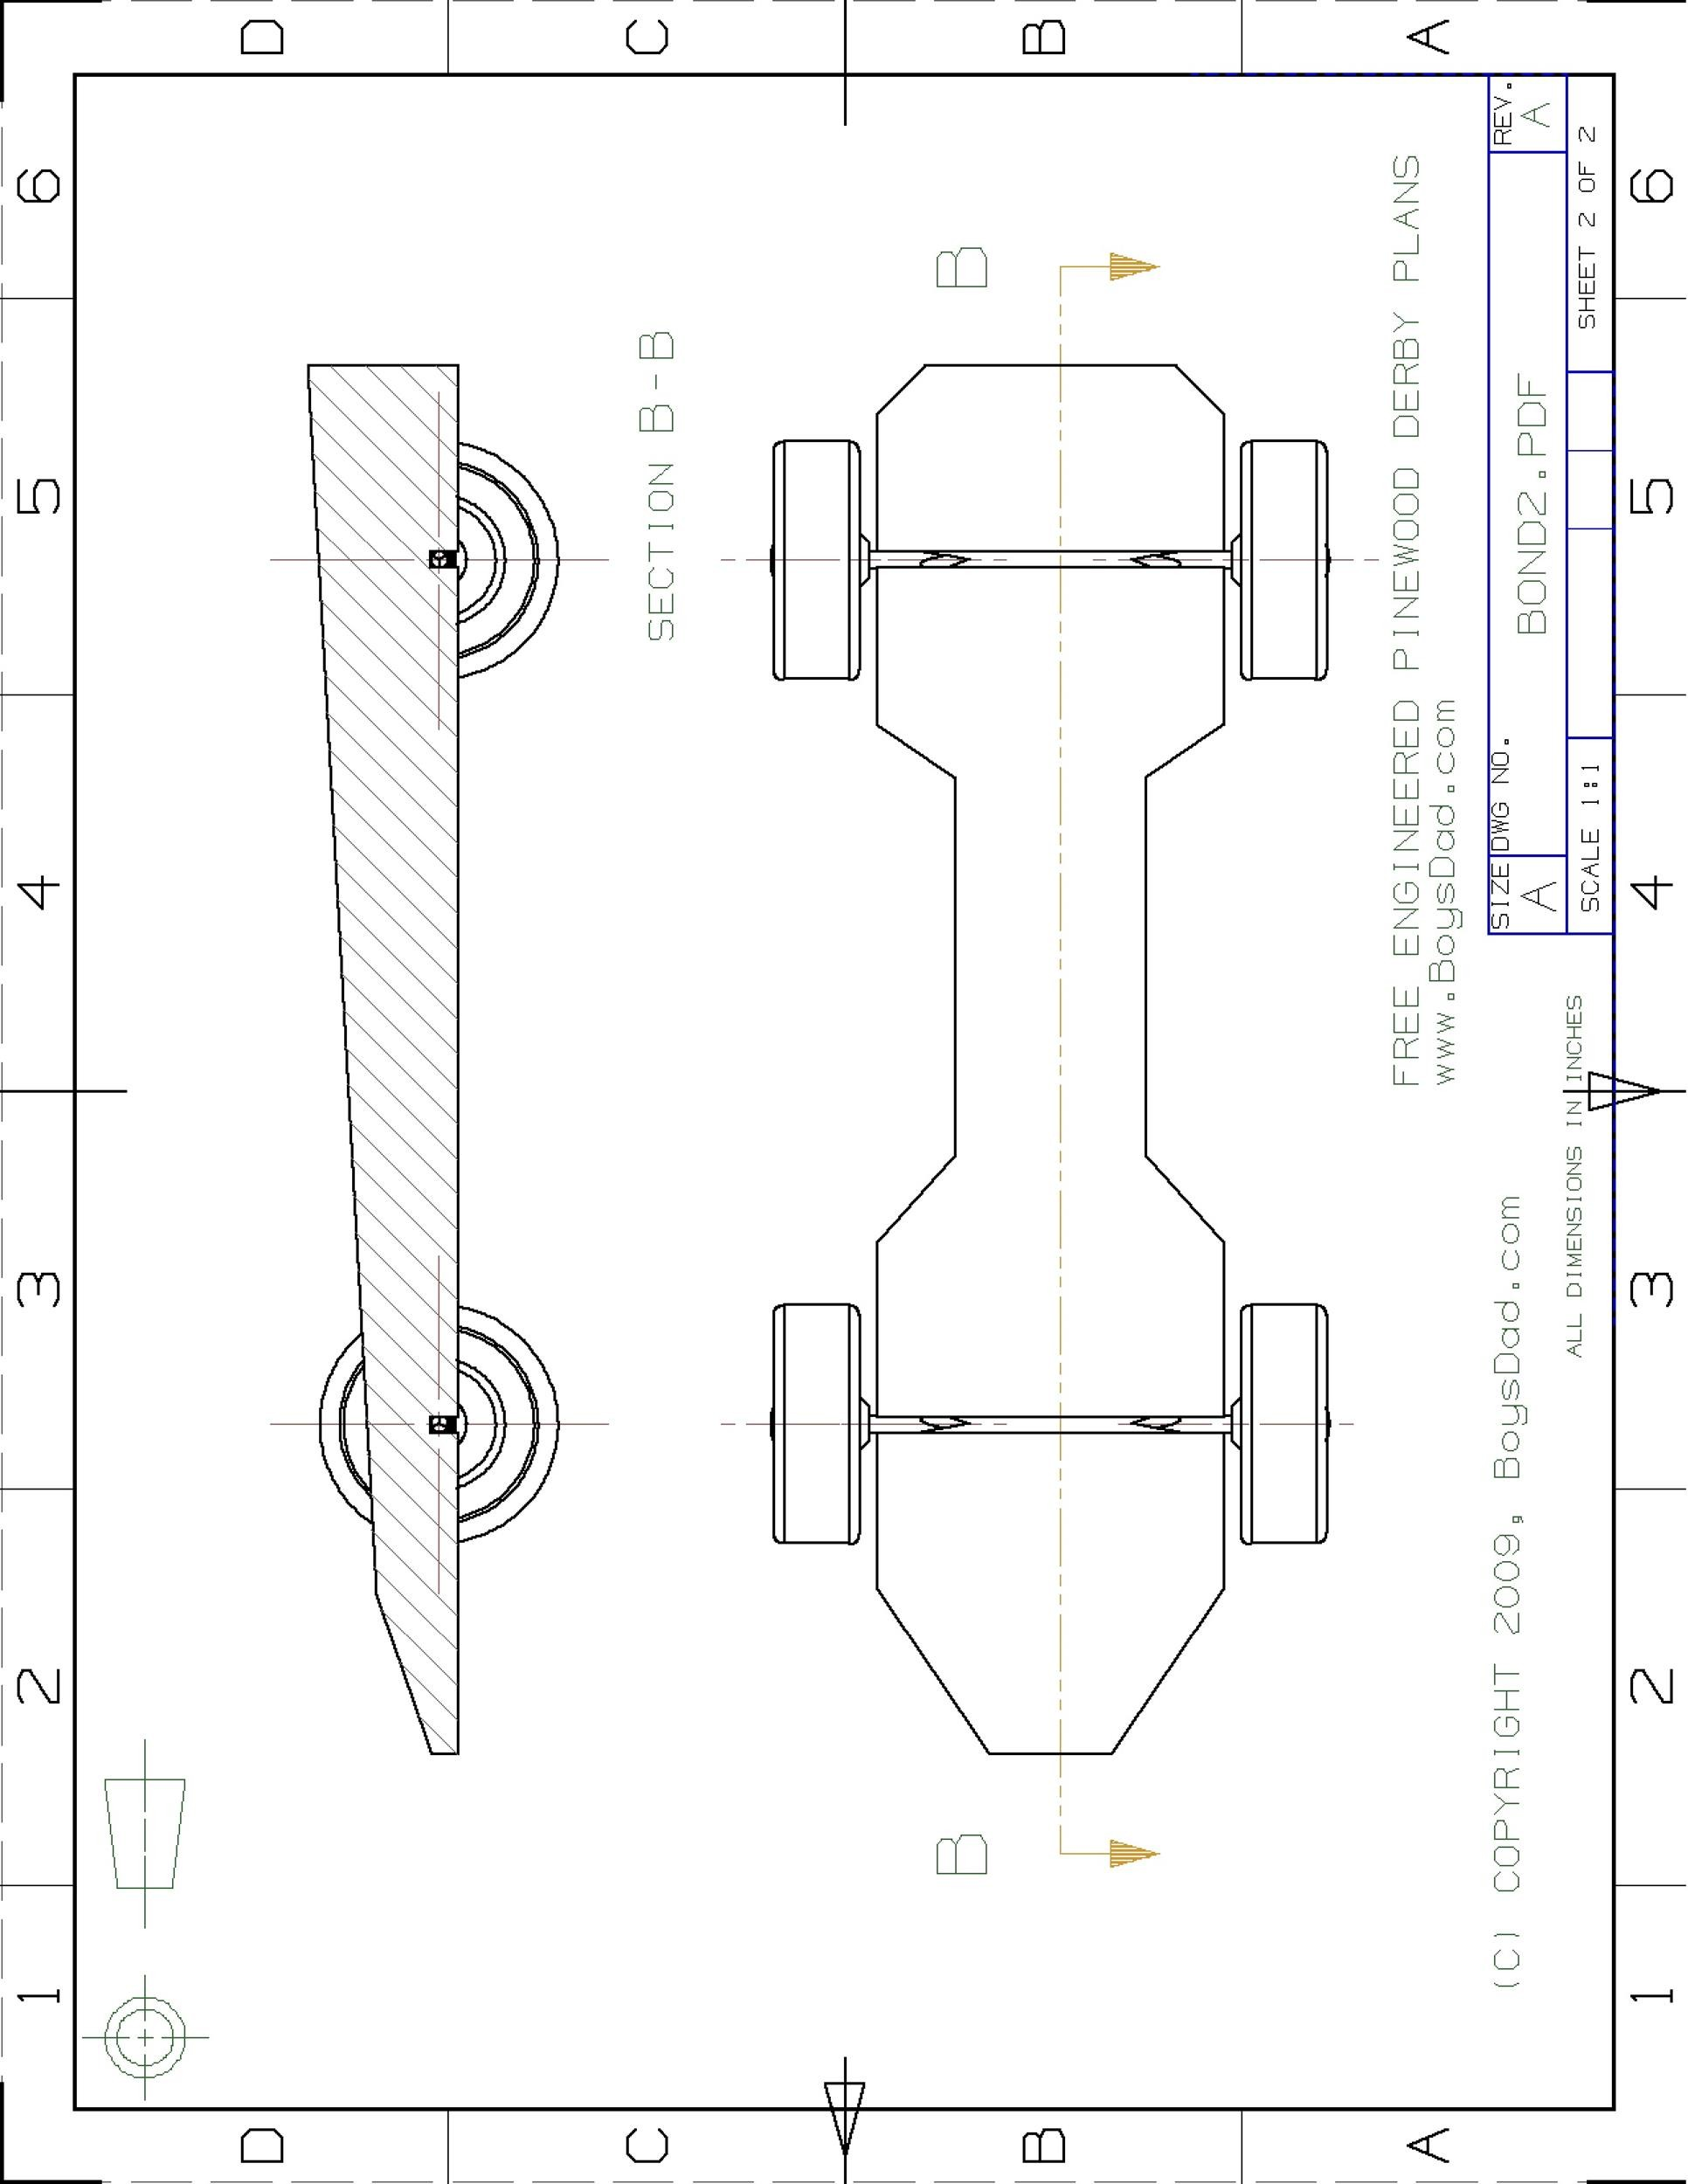 photo about Free Pinewood Derby Templates Printable called 39 Wonderful Pinewood Derby Vehicle Models Templates ᐅ